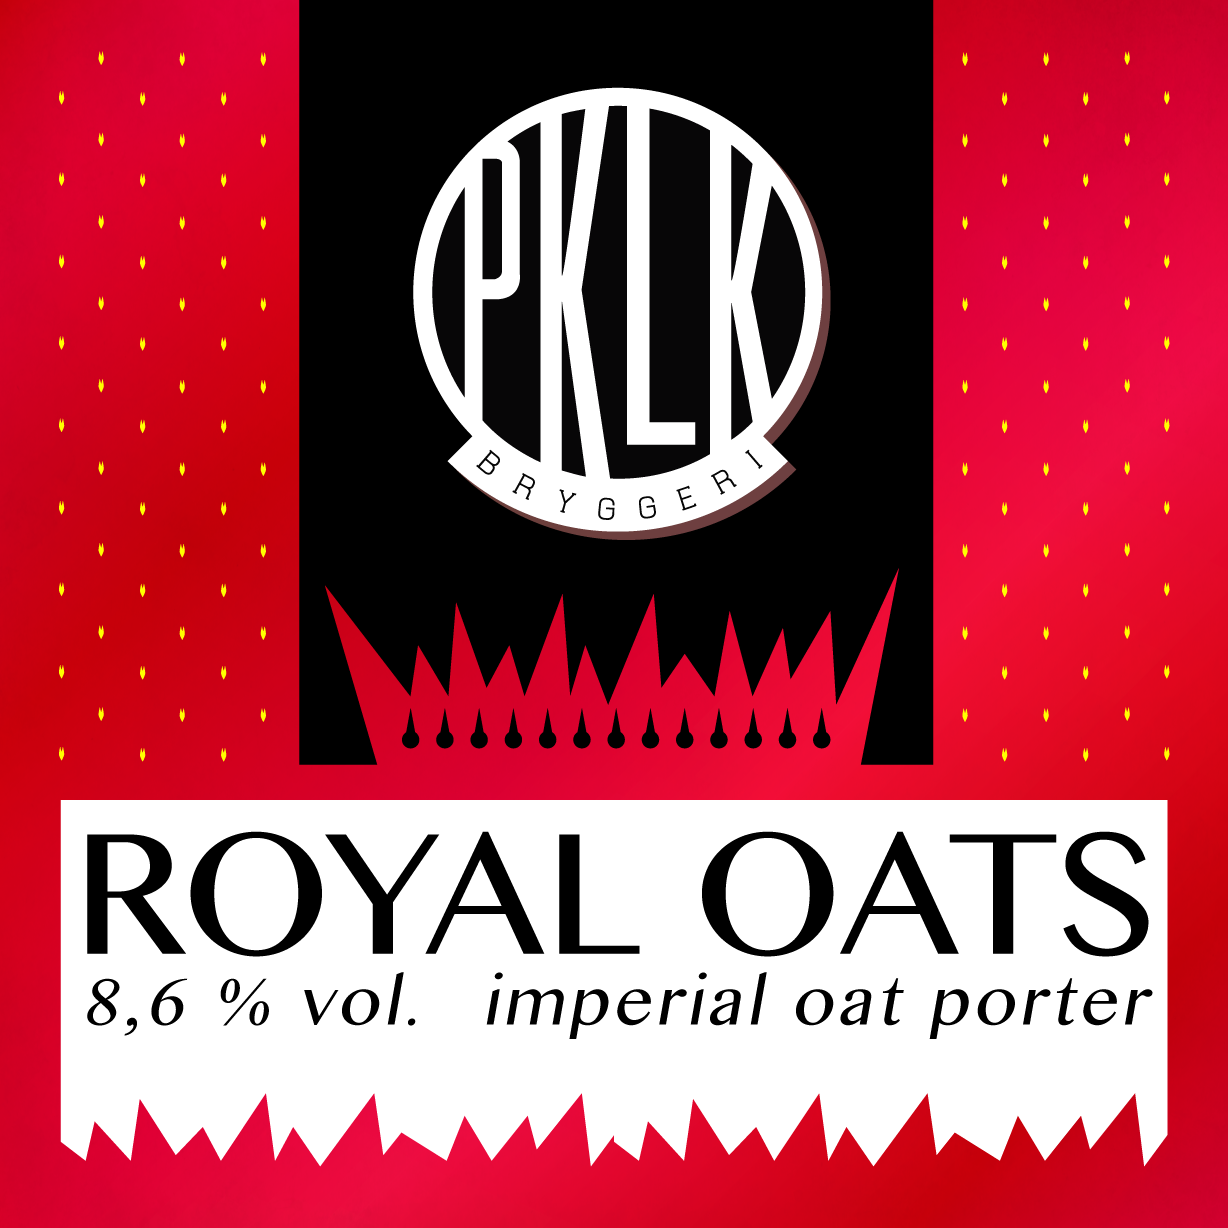 Royal Oats